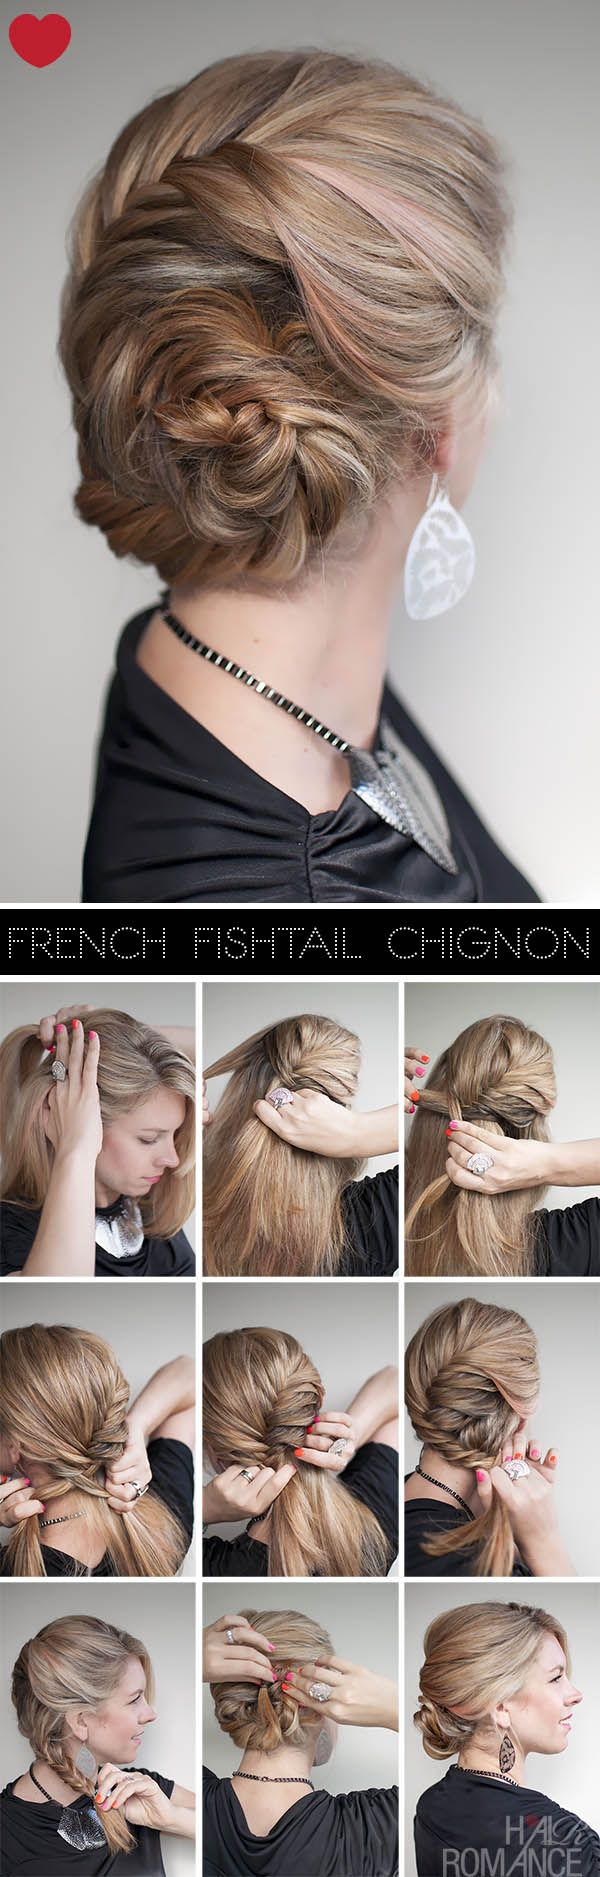 "DIY French Fishtail Chignon Pictures.. Ya they make it look so stinking easy! Lol  Try this ""Elsa"" hairdo on Mallory"